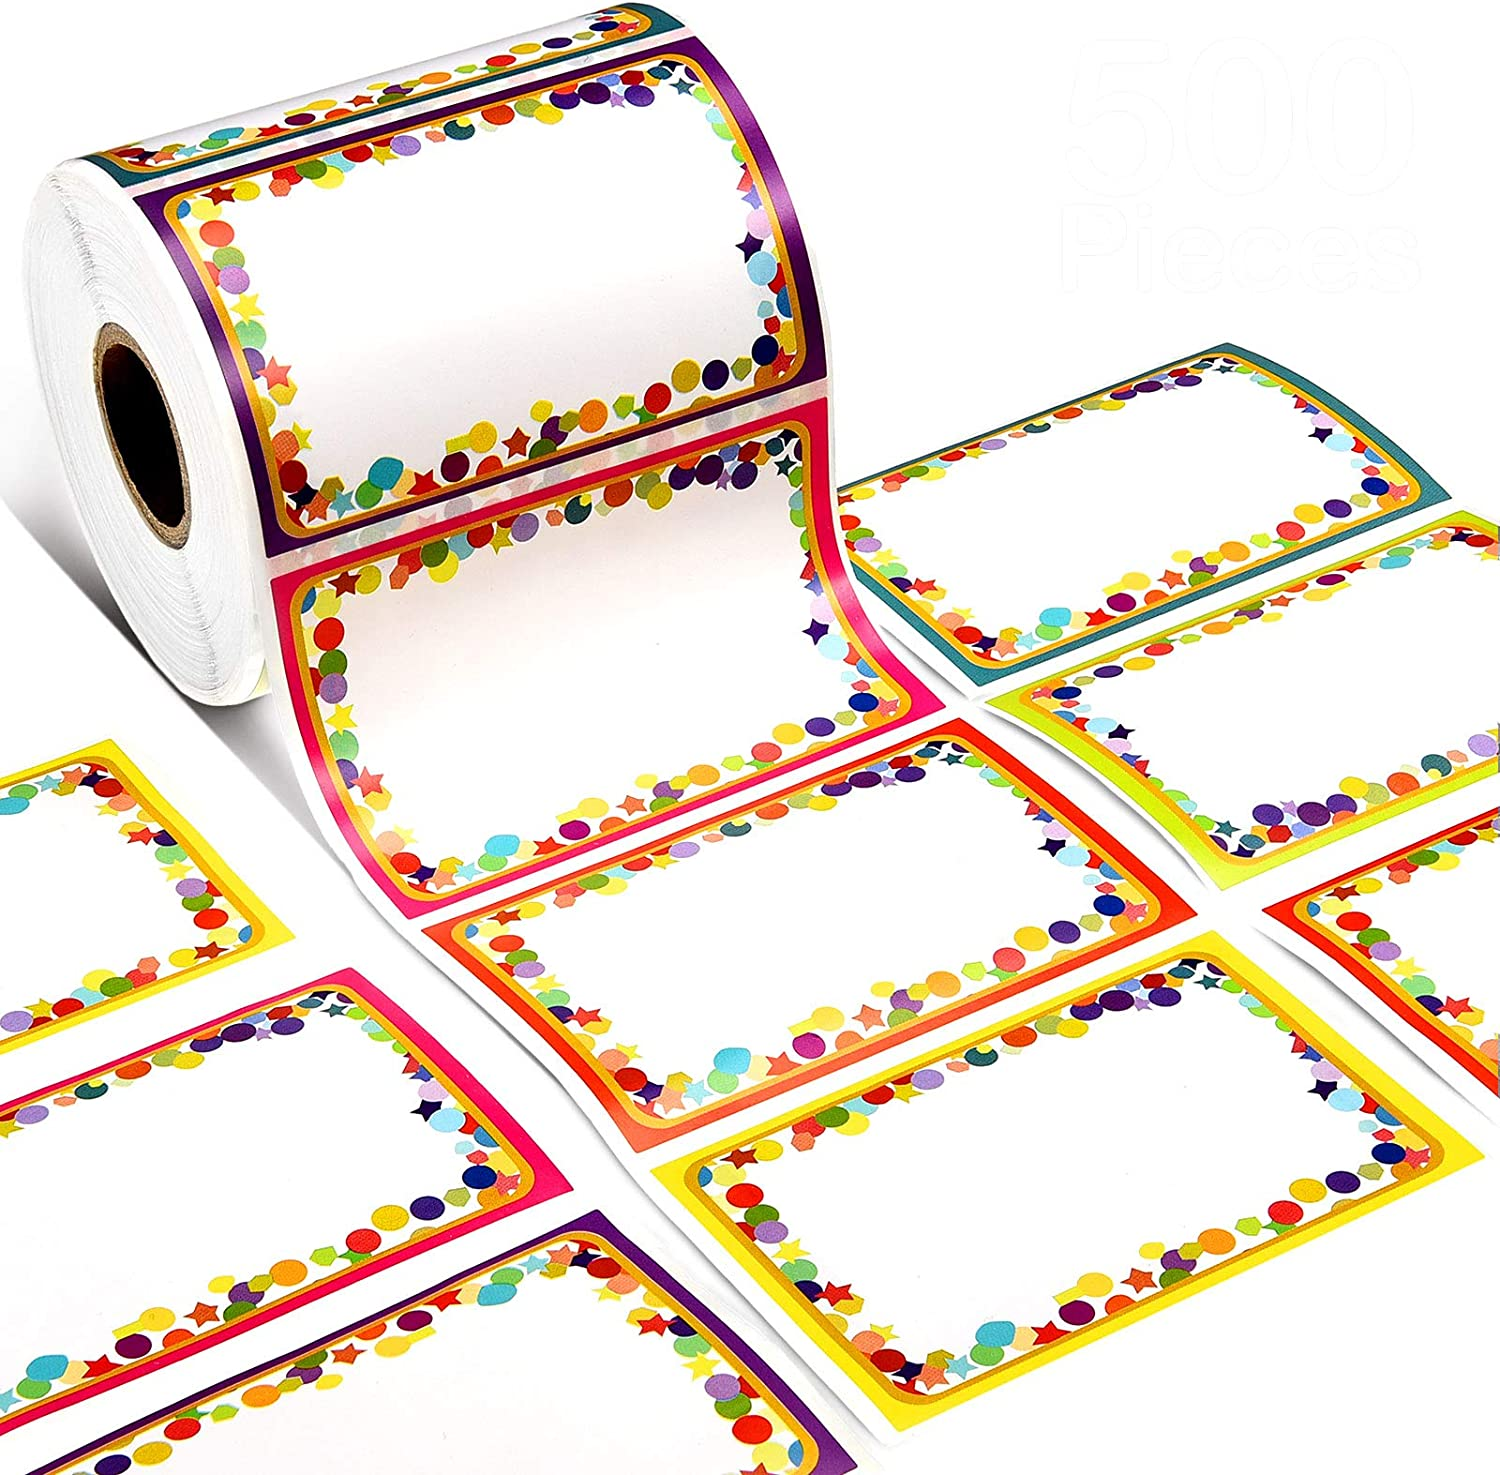 500 Pieces Confetti Name Tags Labels Colorful Name Tag Stickers Self-Adhesive Board Name Label Sticker for Kids Cloth, Teachers, Parties, School, Home, Office, Warehouses and Mailing